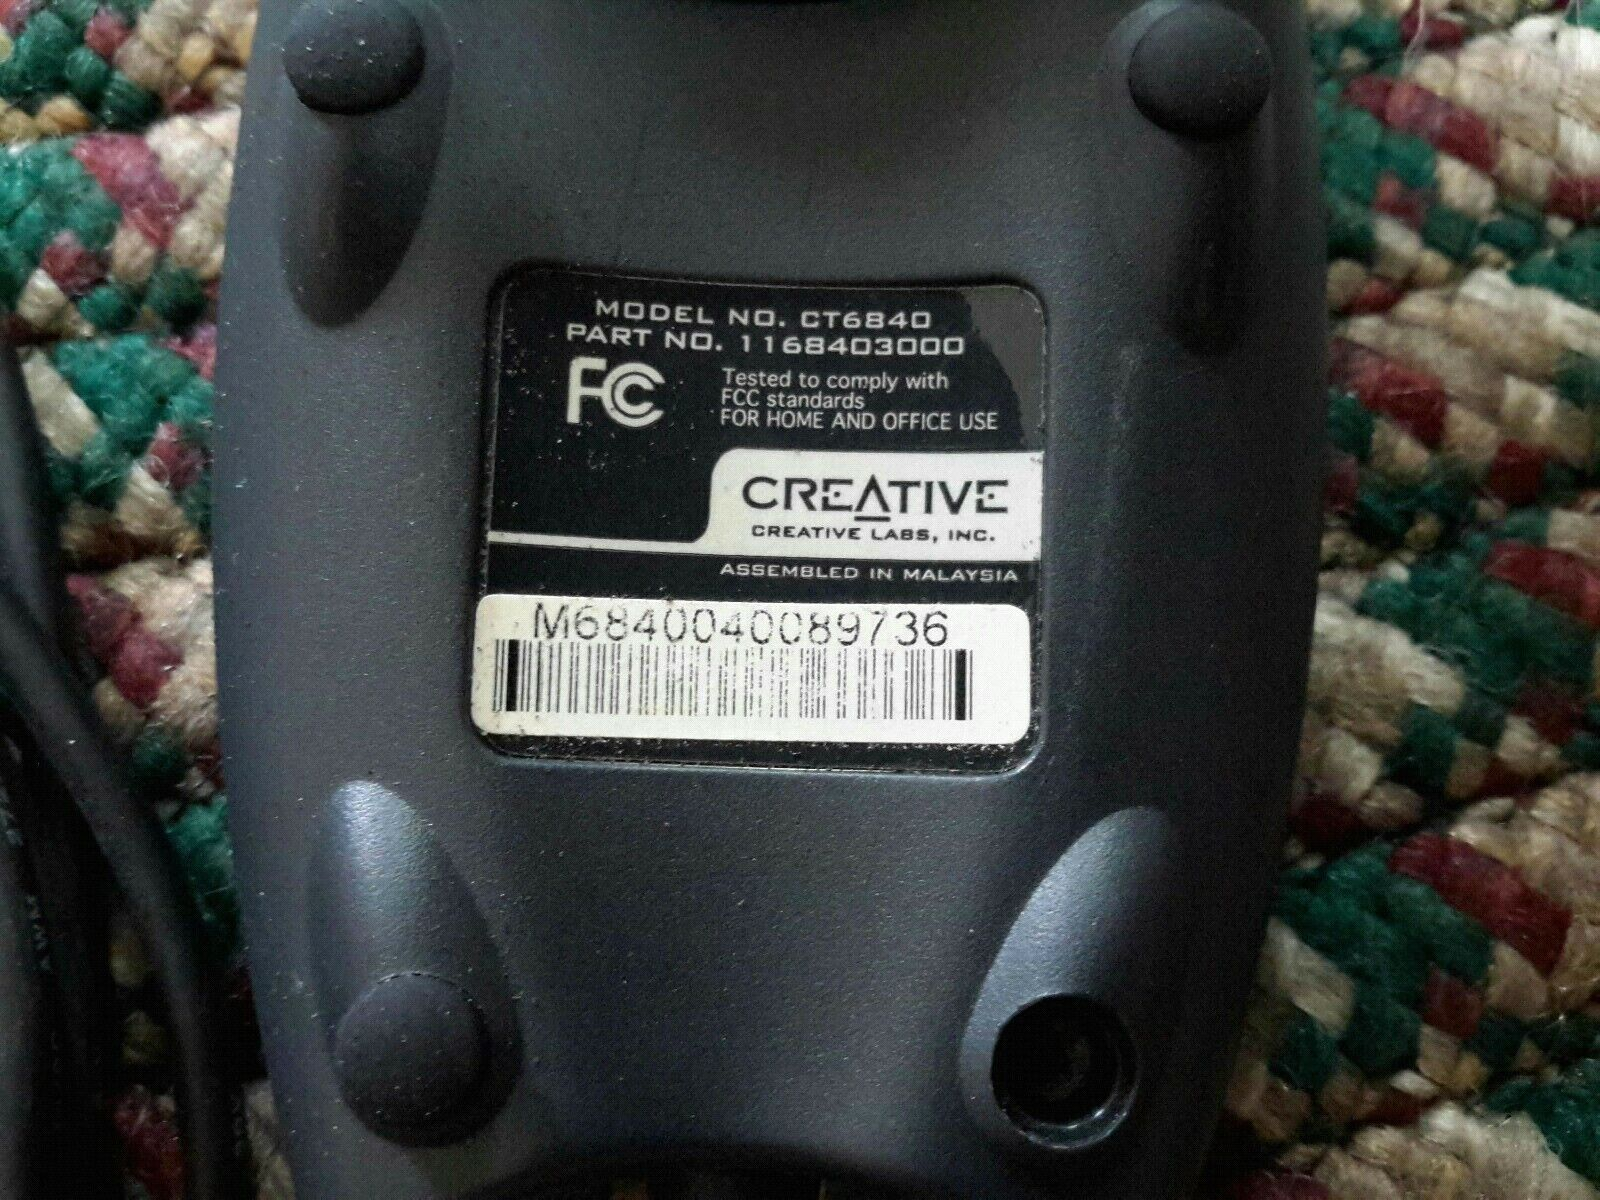 CREATIVE LABS MODEL CT6840 DRIVERS FOR MAC